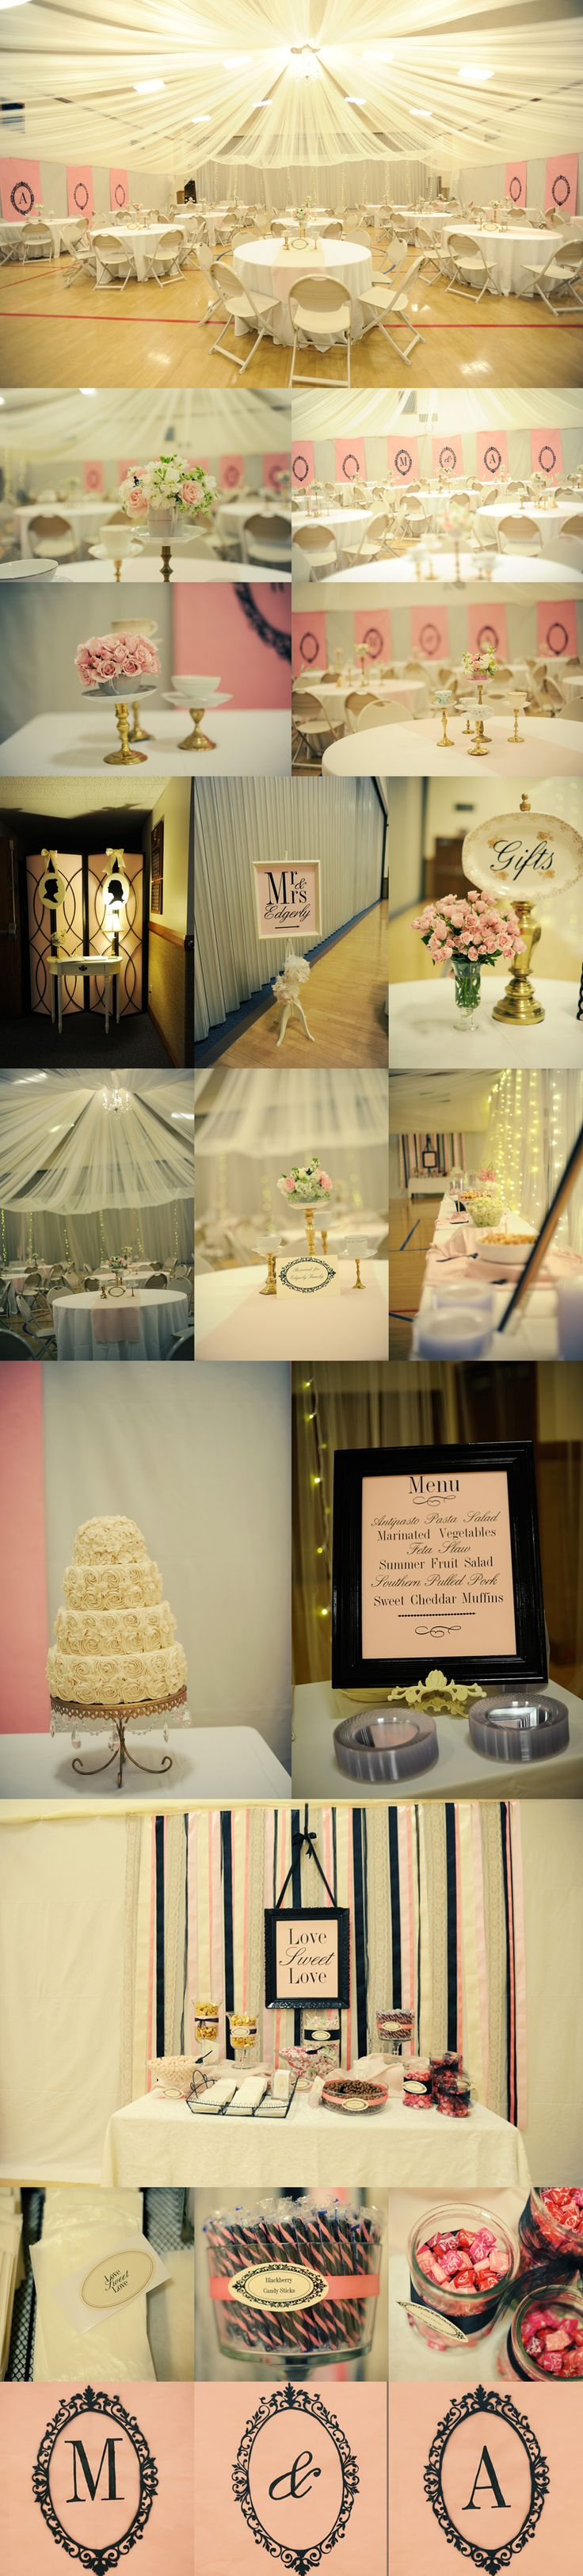 lds cultural hall transformed for a wedding reception - such cute black, white, pink & gold details